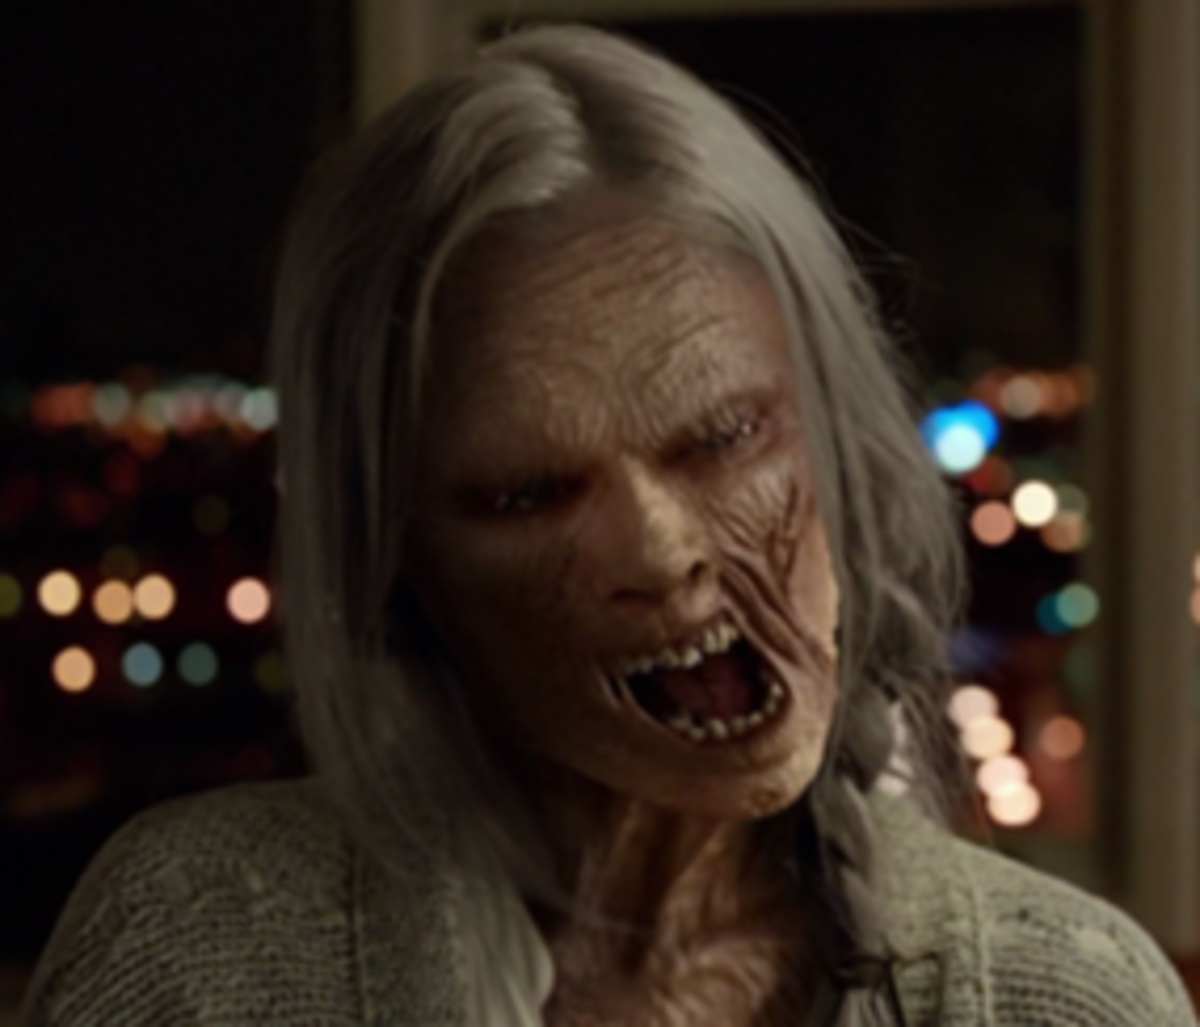 Hexenbiest from Grimm